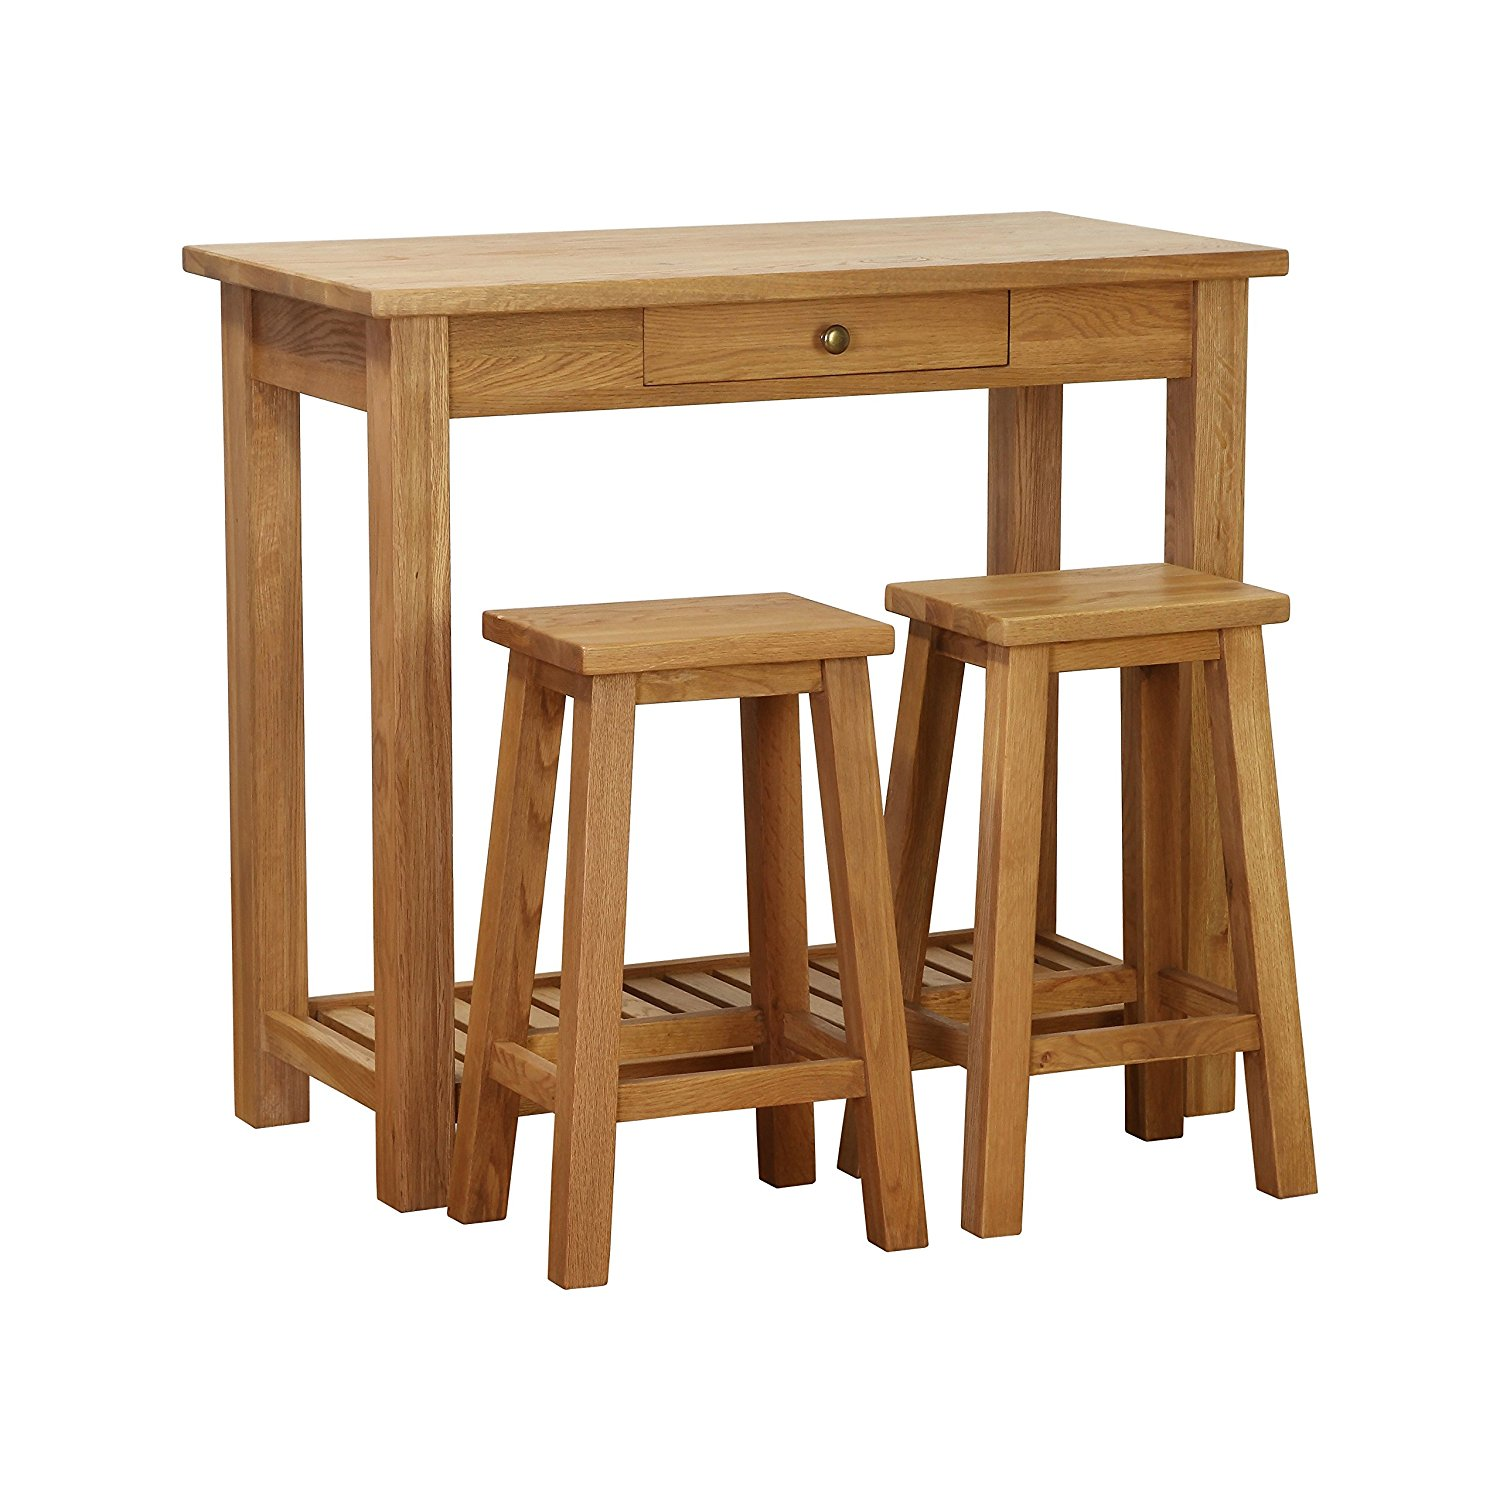 Besp-oak Vancouver Breakfast Table with Two (2) Stools